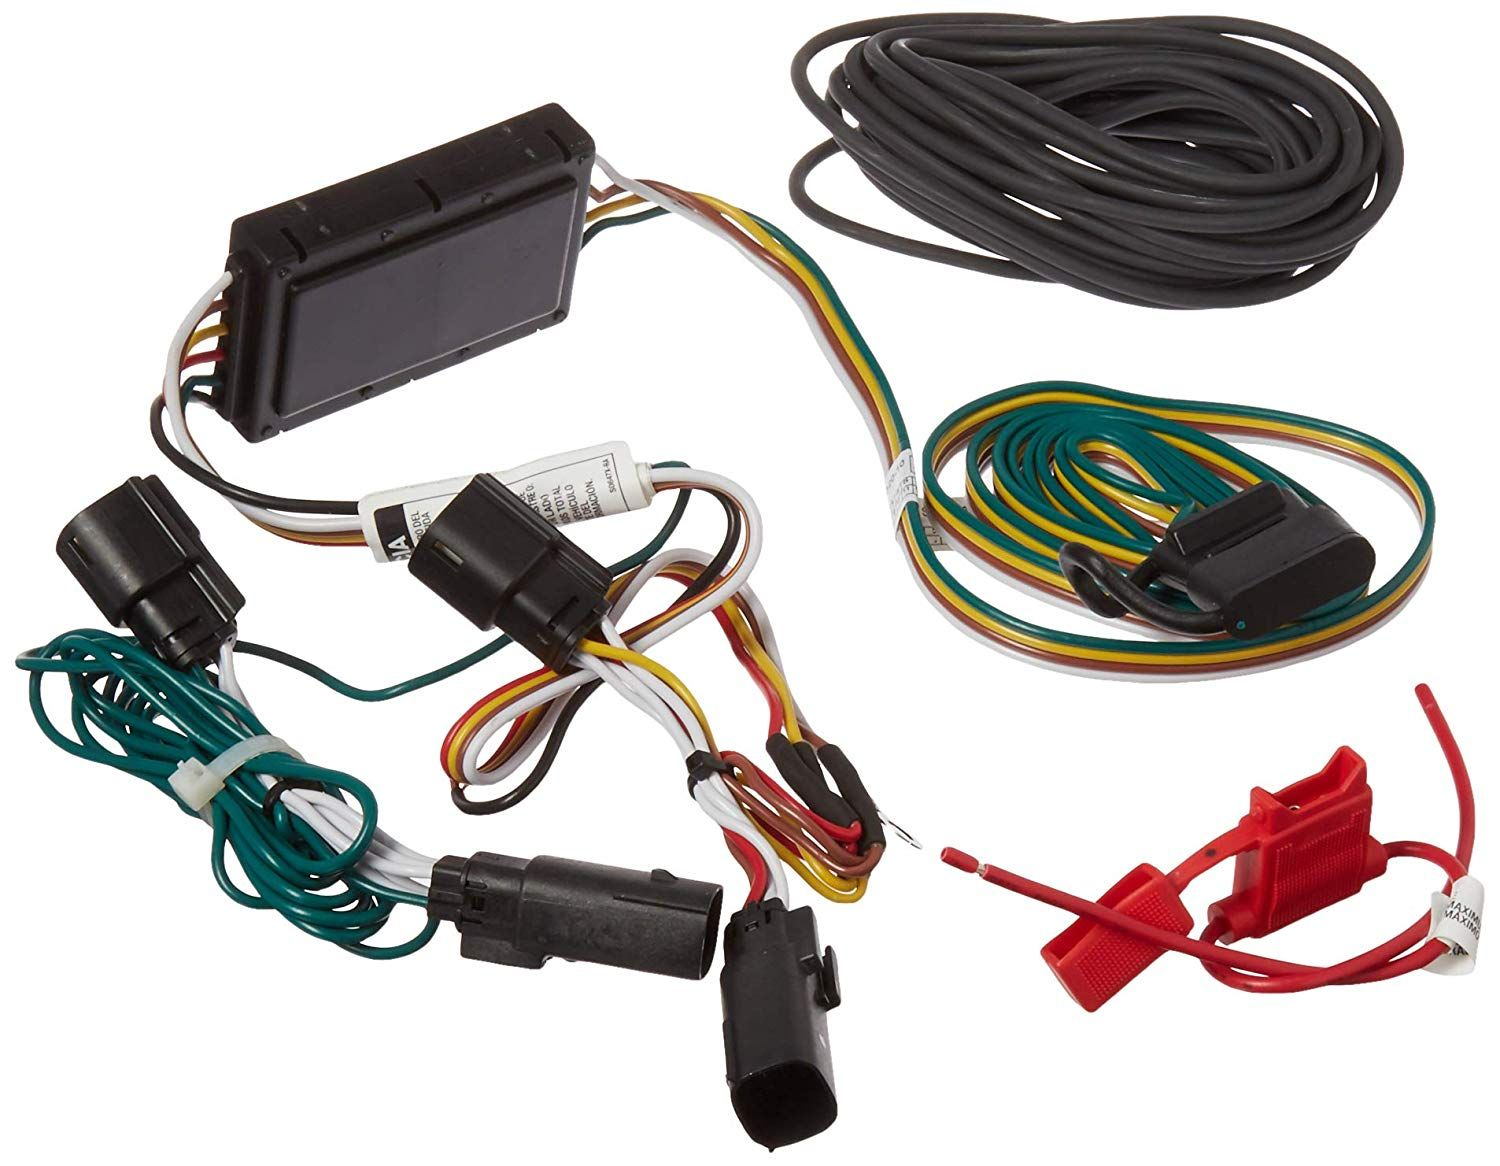 curt manufacturing 56320 custom trailer wiring harness provides a 4 way flat connector for [ 1500 x 1166 Pixel ]